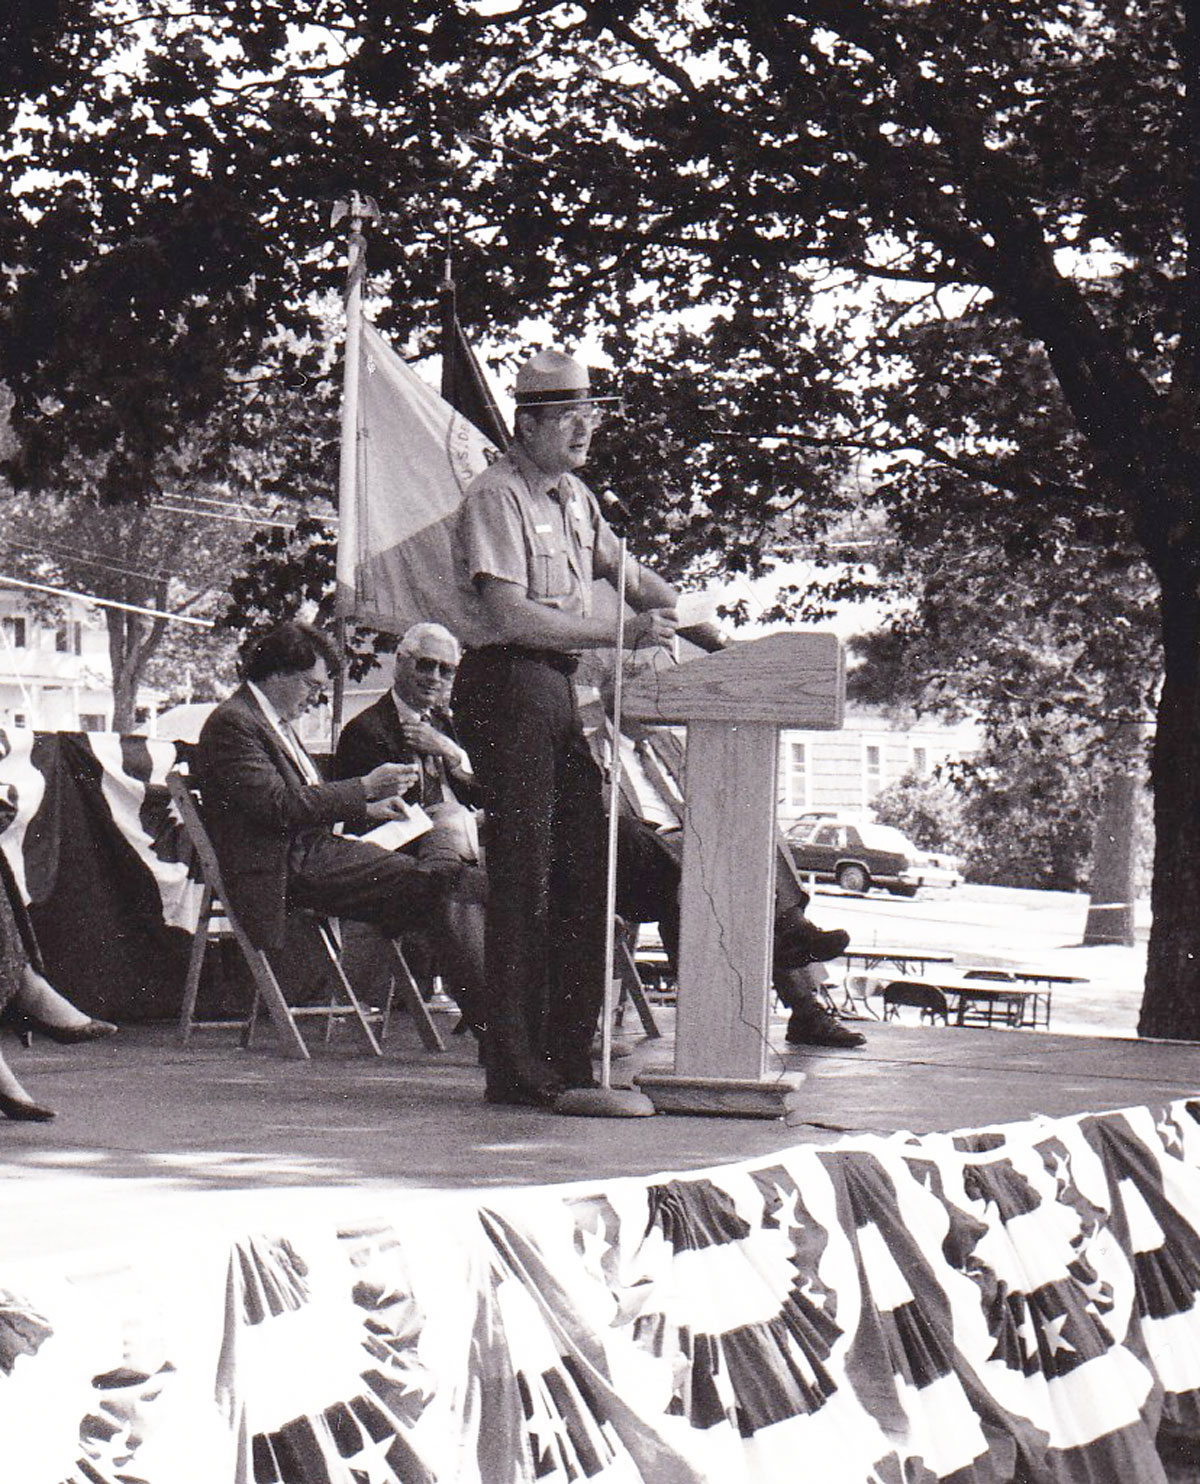 Jerry speaking at the celebration of the 200th anniversary of the U.S. Lighthouse Establishment in 1989.